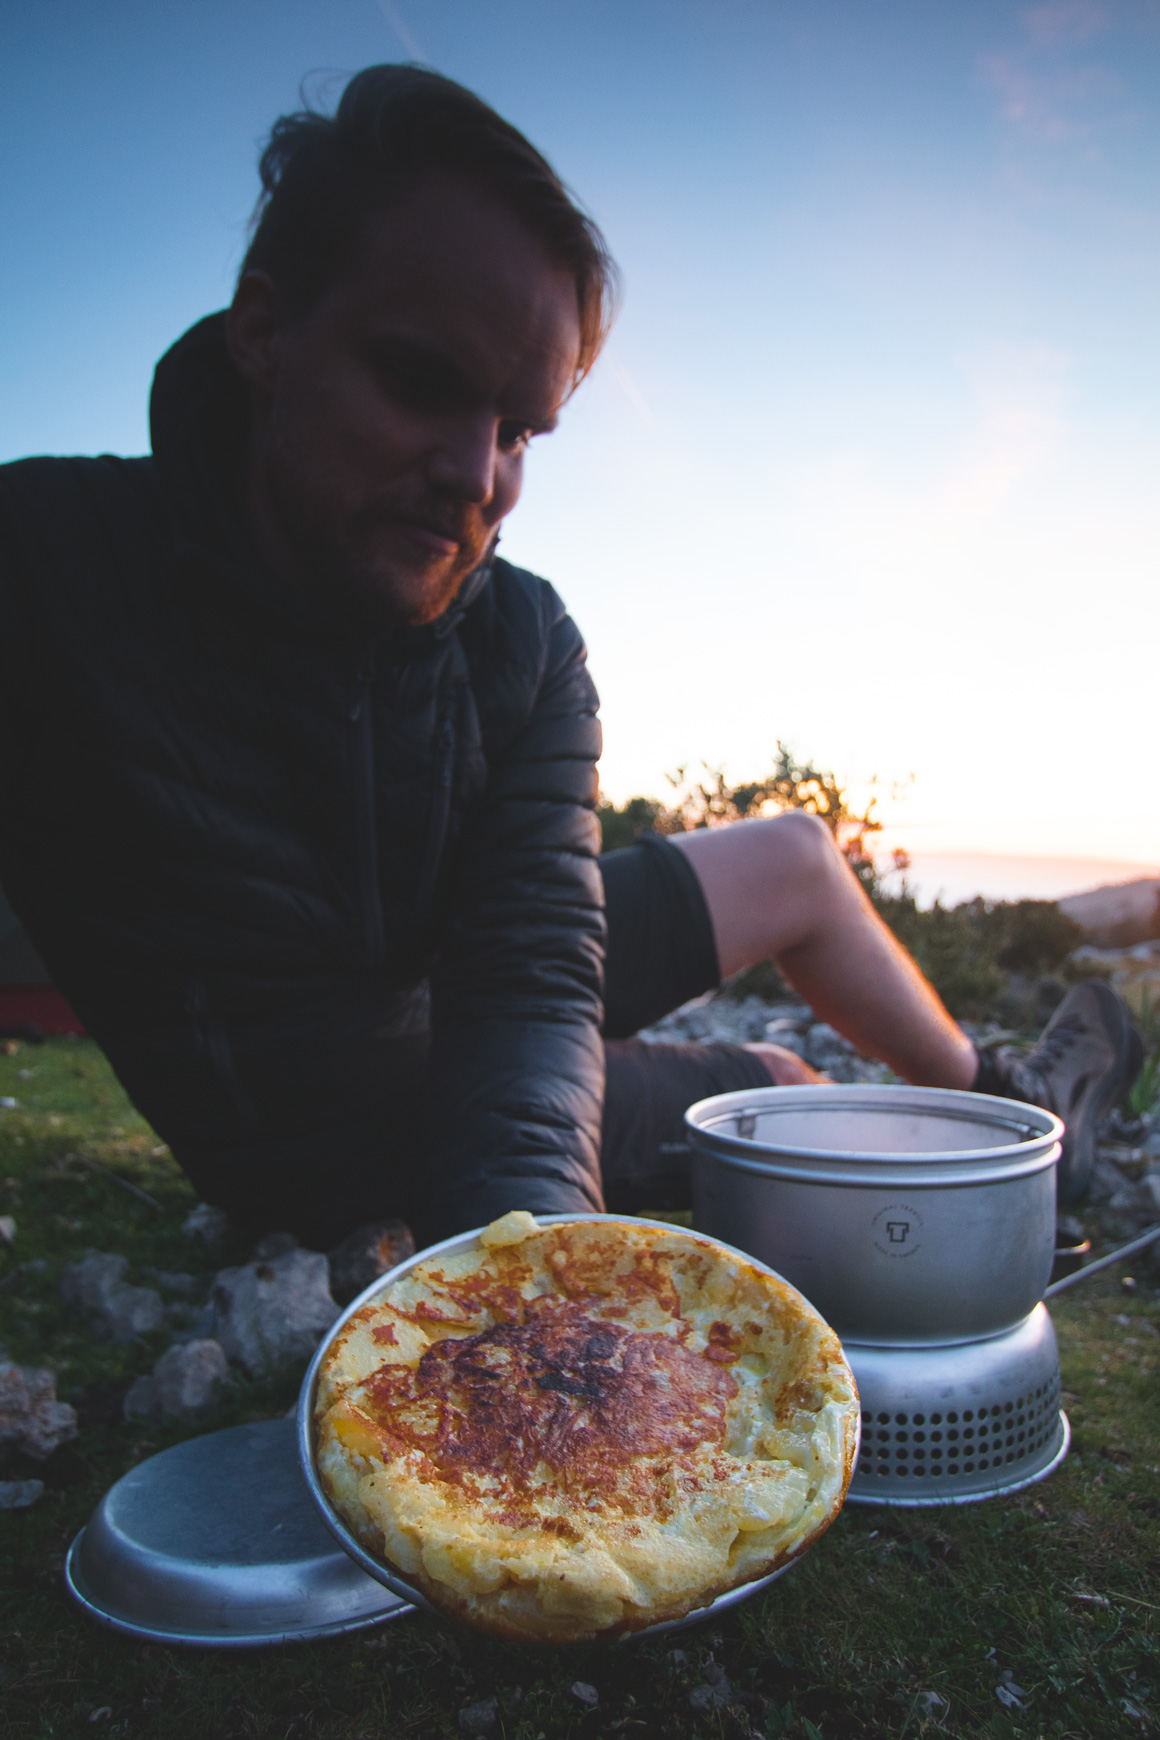 Proud Jan, presenting his Tortilla Española, cooked with the Trangia 25-4 UL (Ultralight Aluminium) Cooking Set